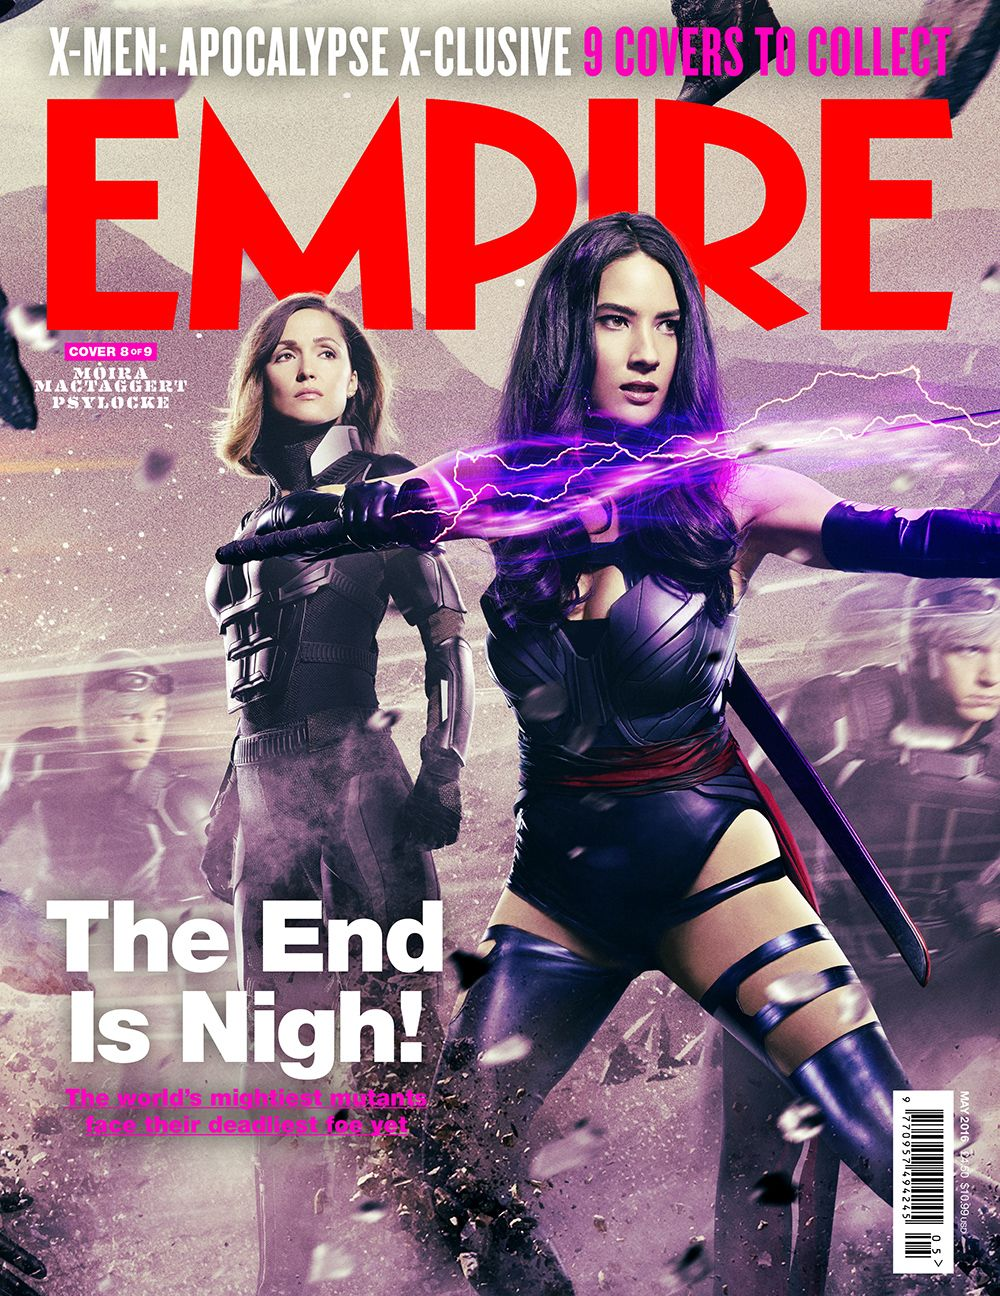 X Men Apocalypse Rose Byrne As Moira Mactaggert Olivia Munn As Betsy Braddock Psylocke And Evan Peters As Peter Quicksilver For X Men Psylocke Apocalypse